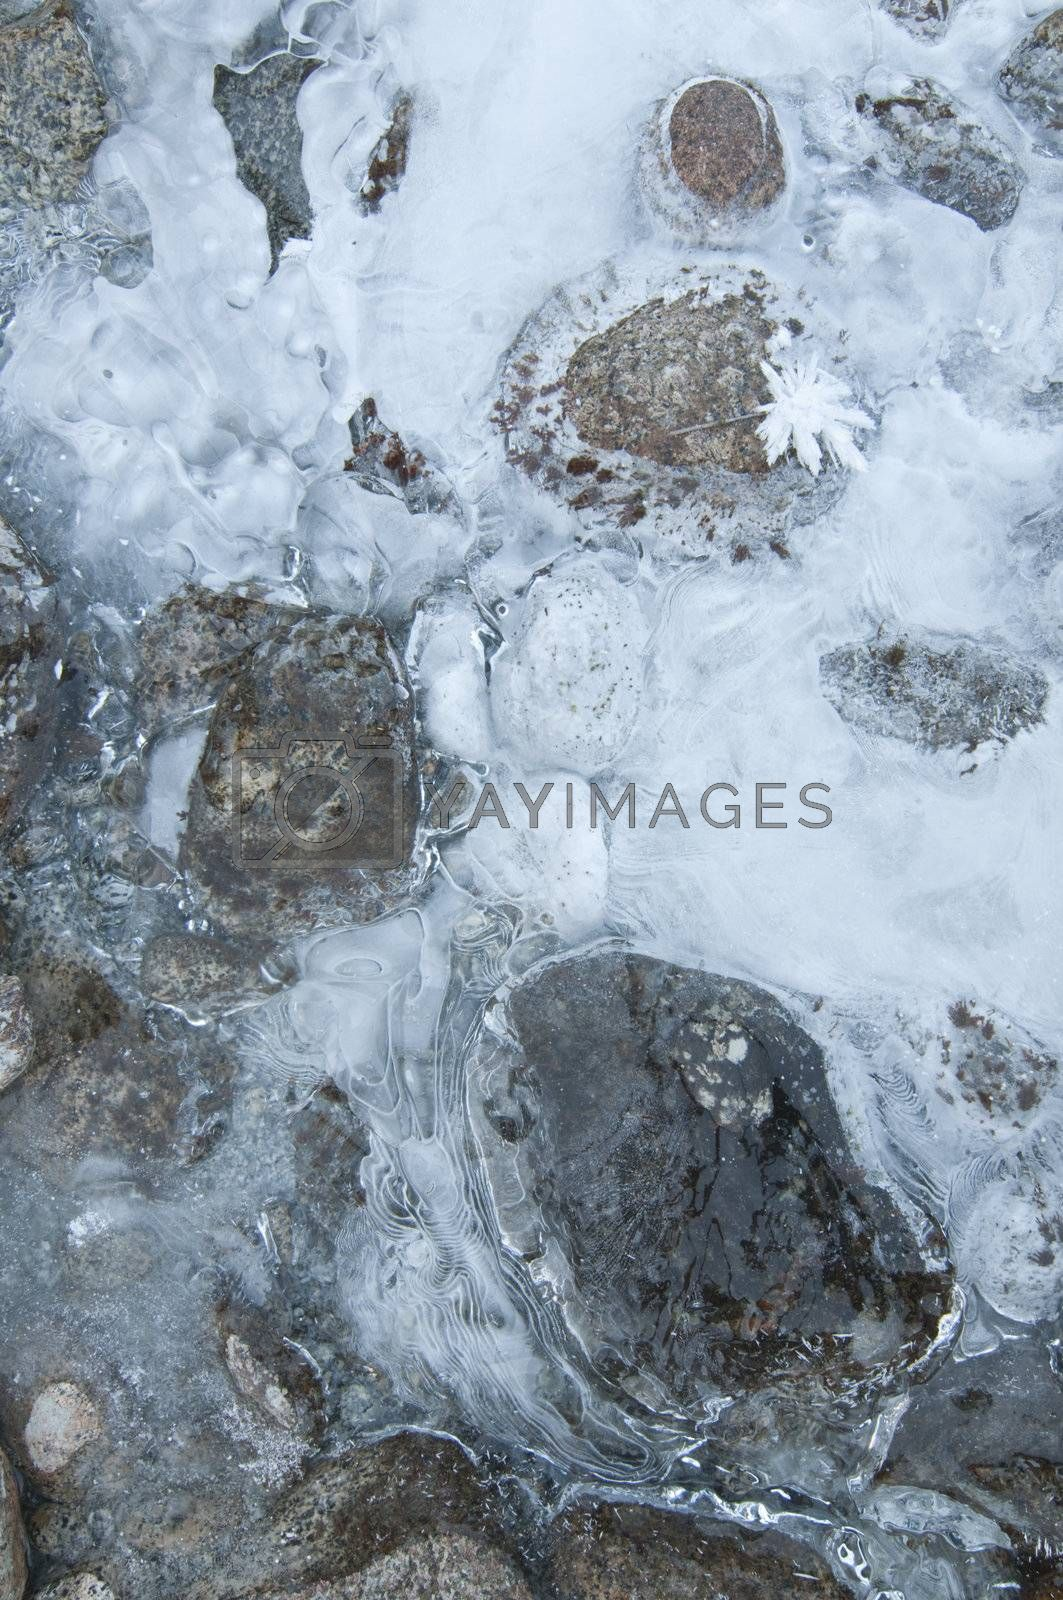 Royalty free image of Ice formations on a mountain river by AlessandroZocc